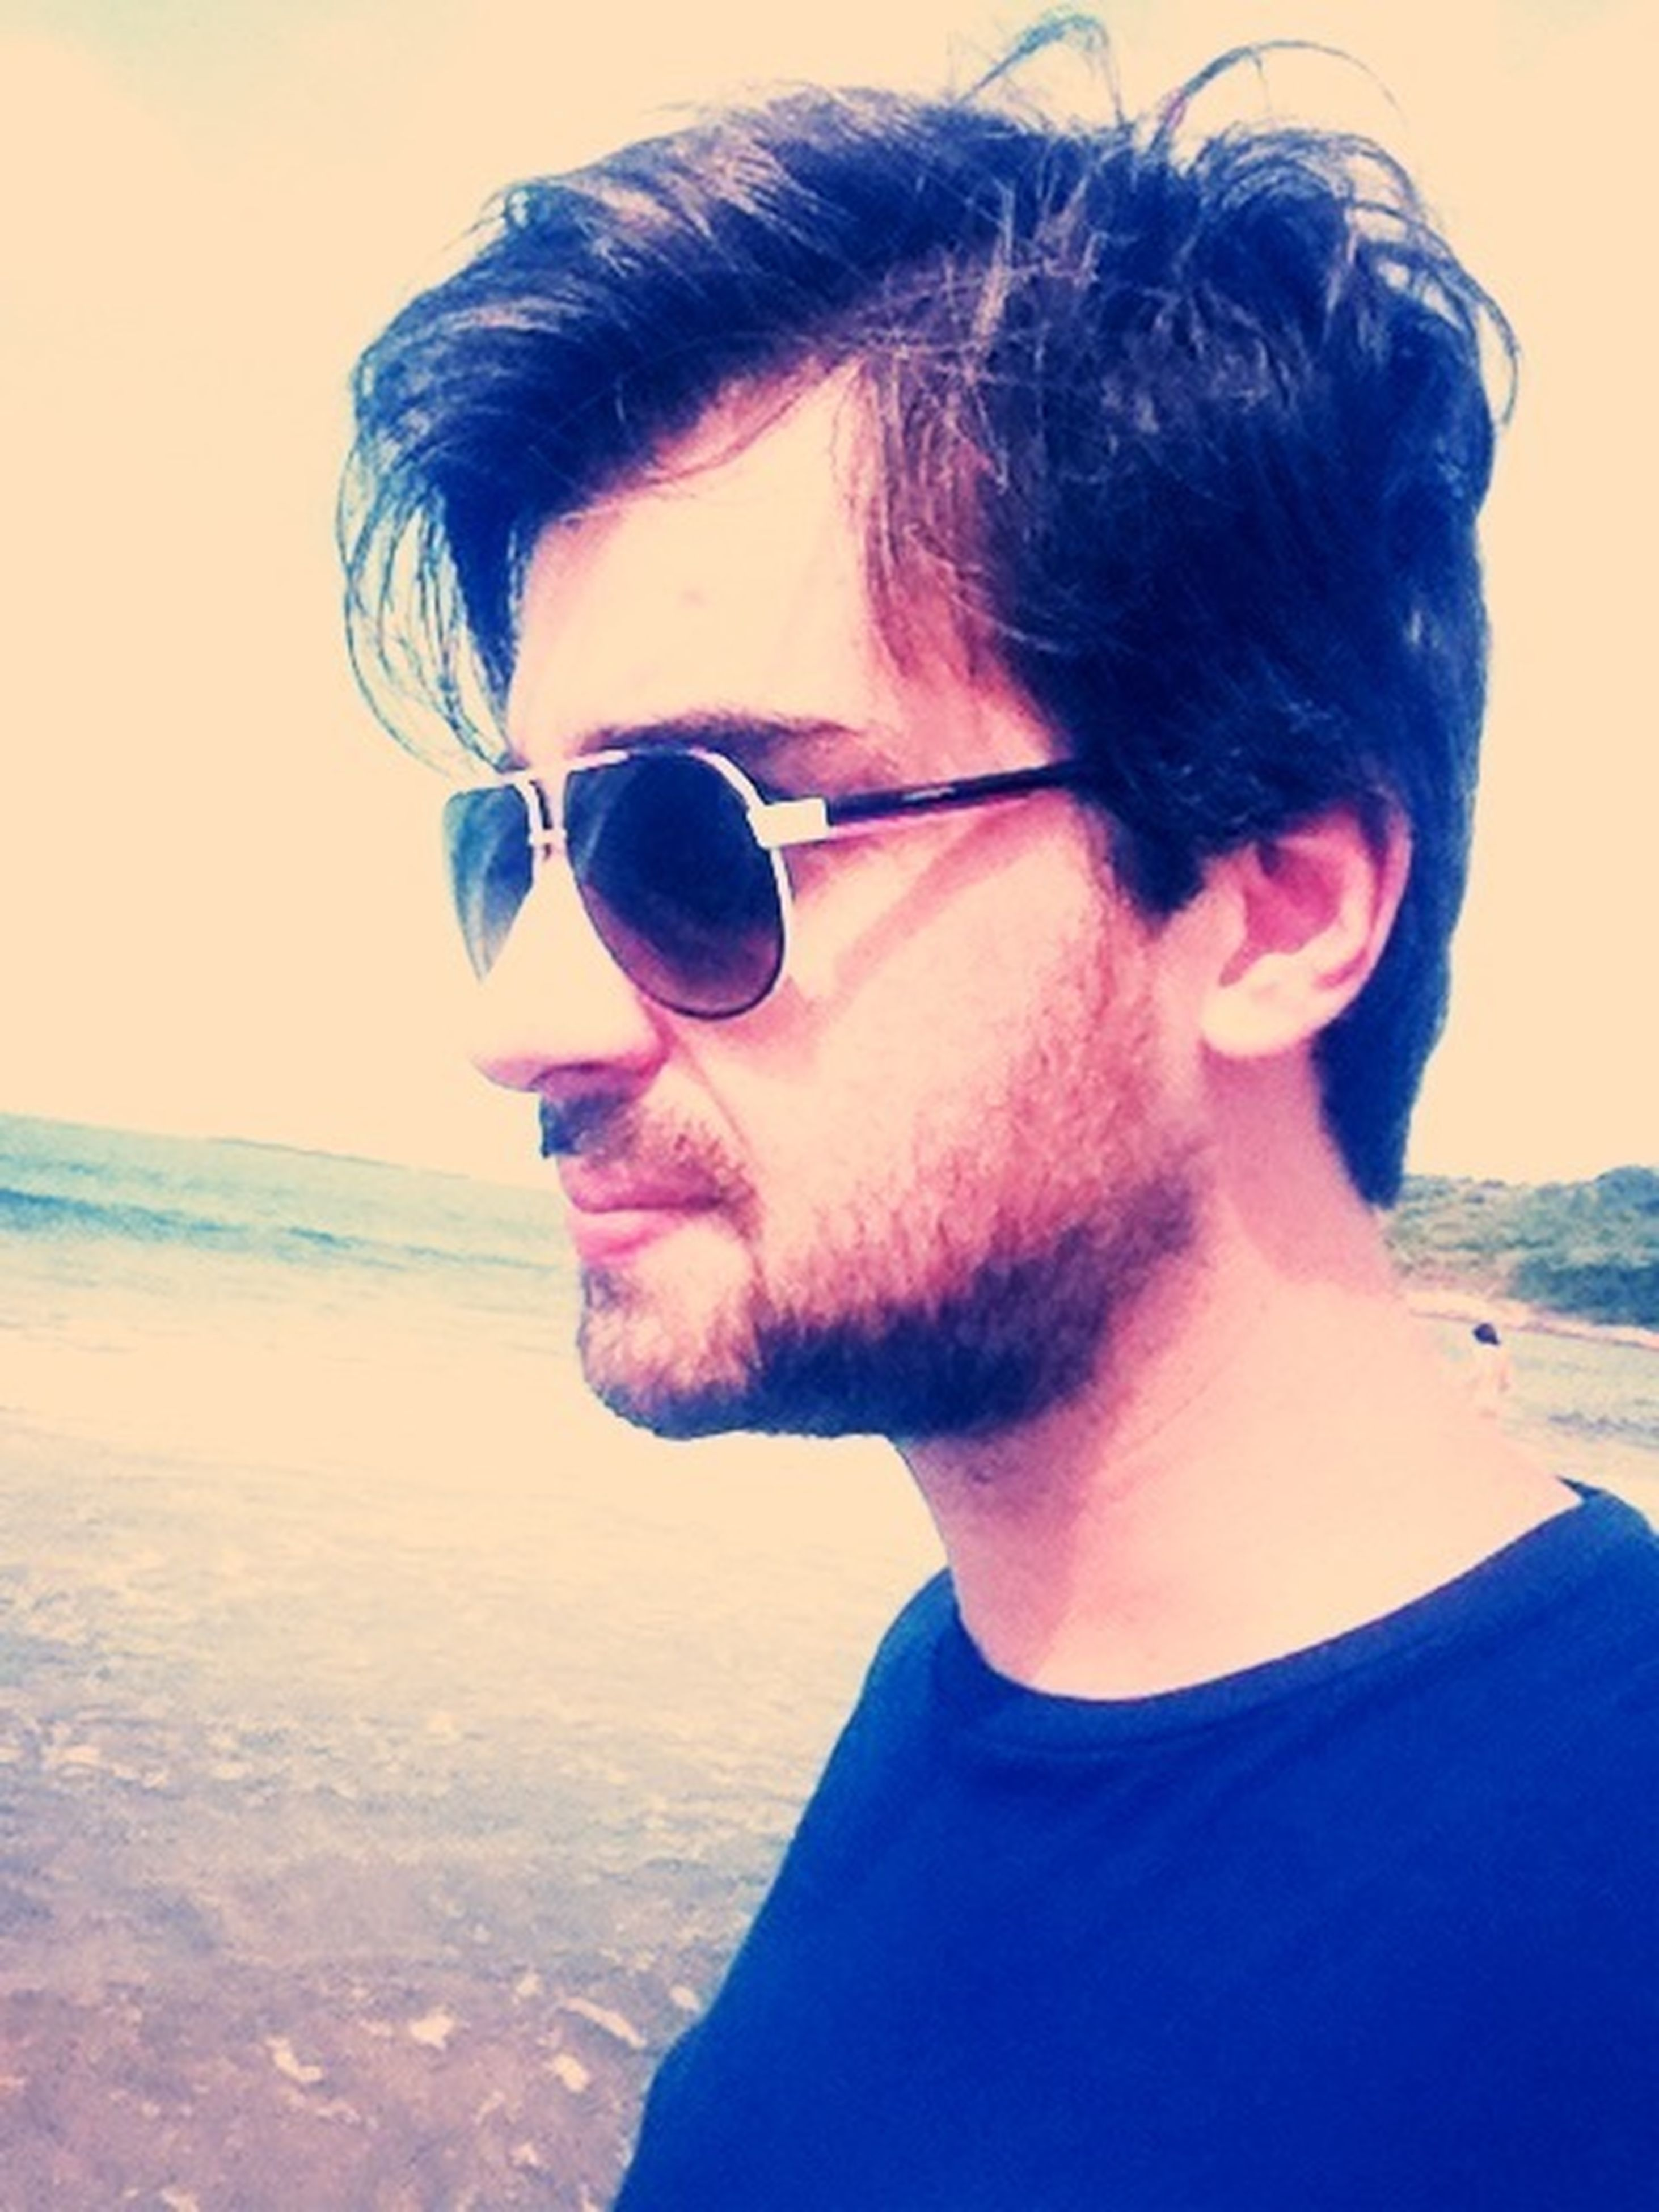 sunglasses, lifestyles, person, young adult, leisure activity, sea, beach, headshot, water, portrait, young men, vacations, looking at camera, sunlight, casual clothing, sky, front view